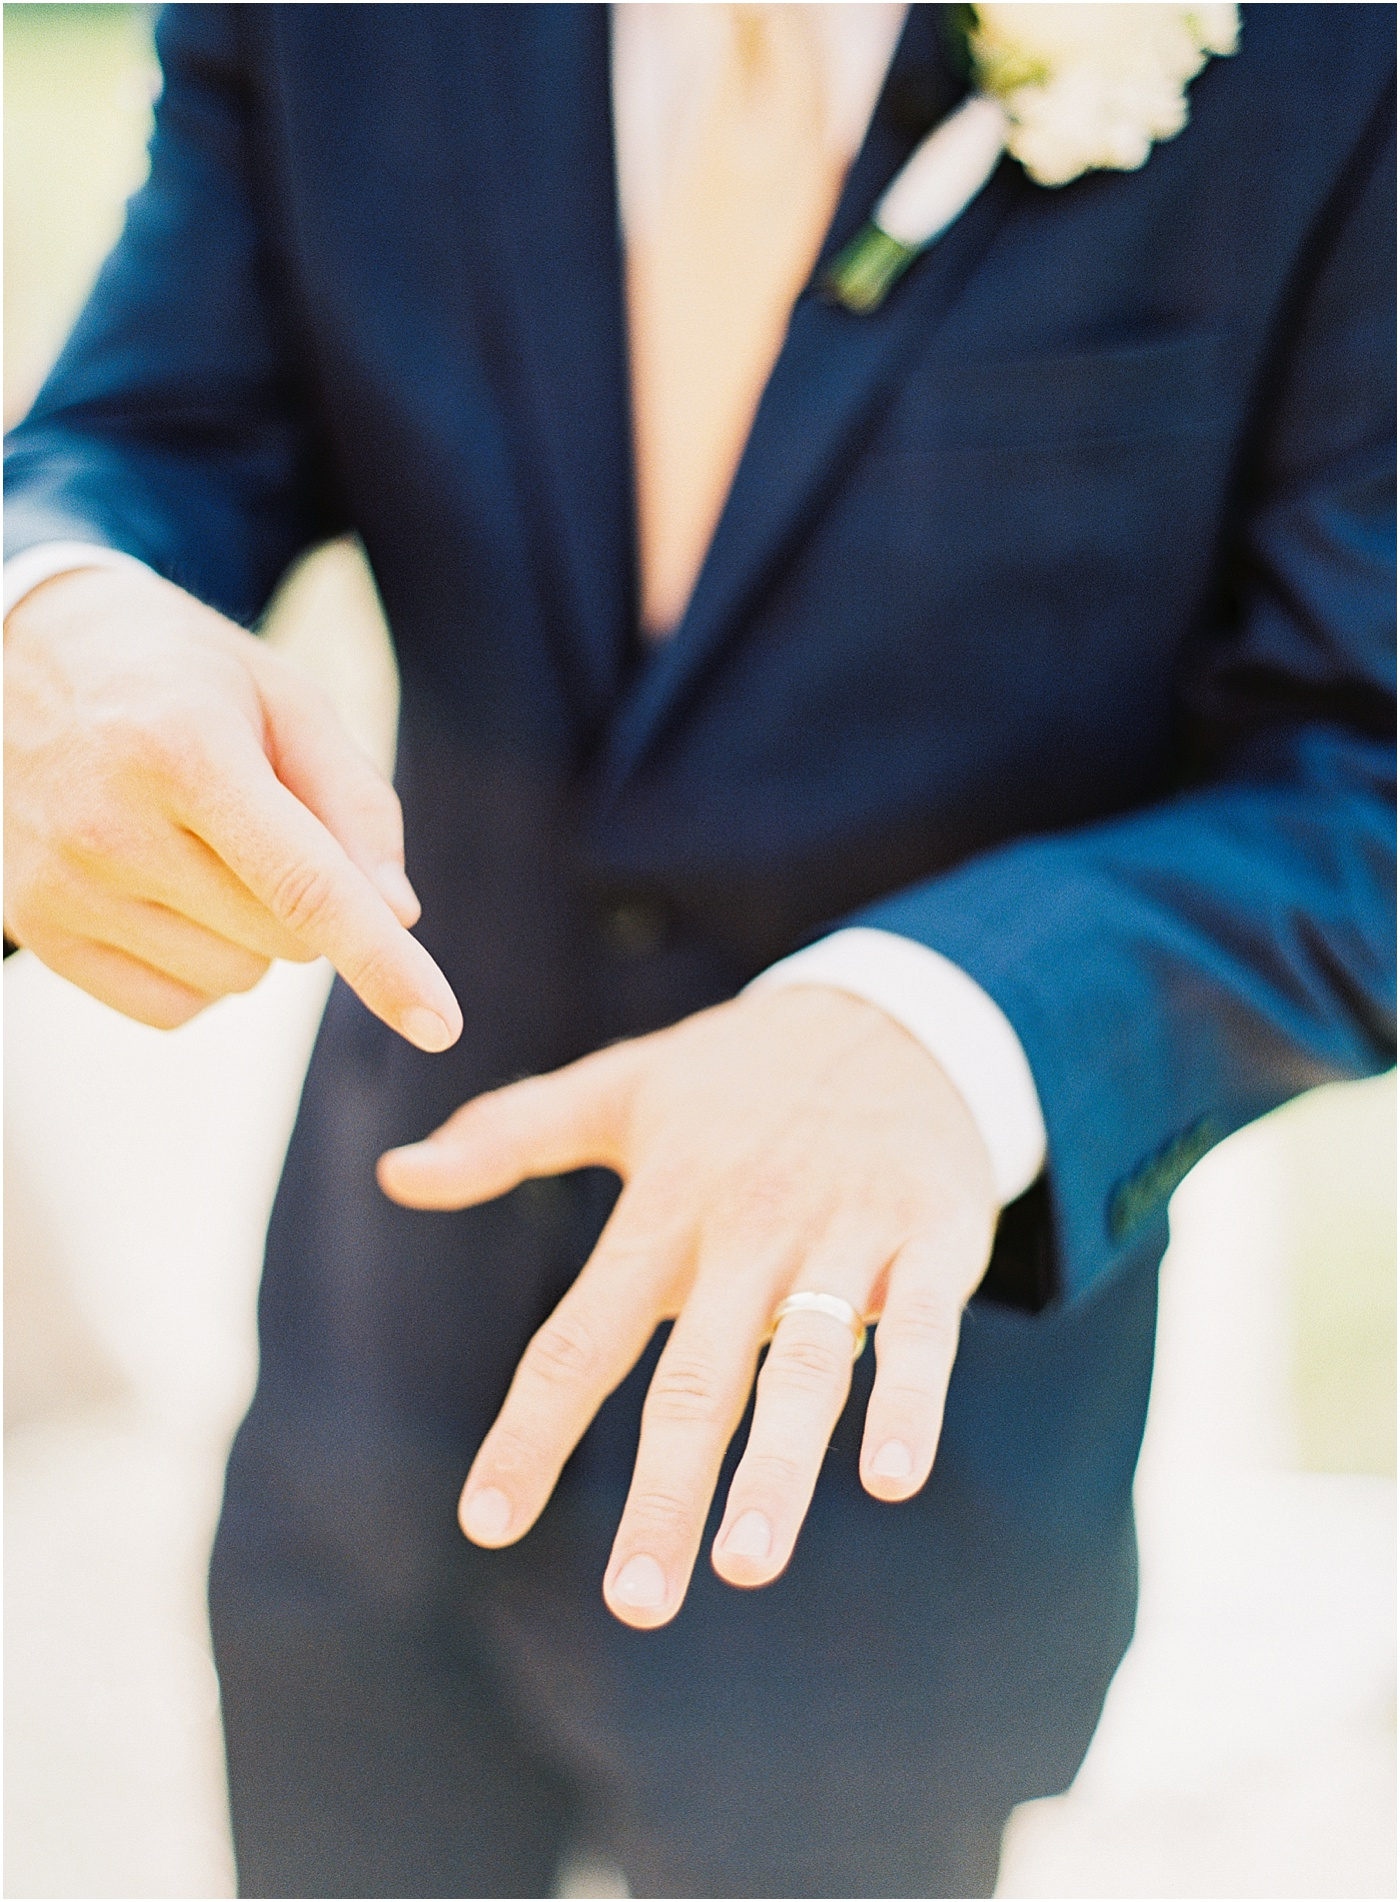 Should you sneak away after the ceremony? - The Jordan Brittley Blog